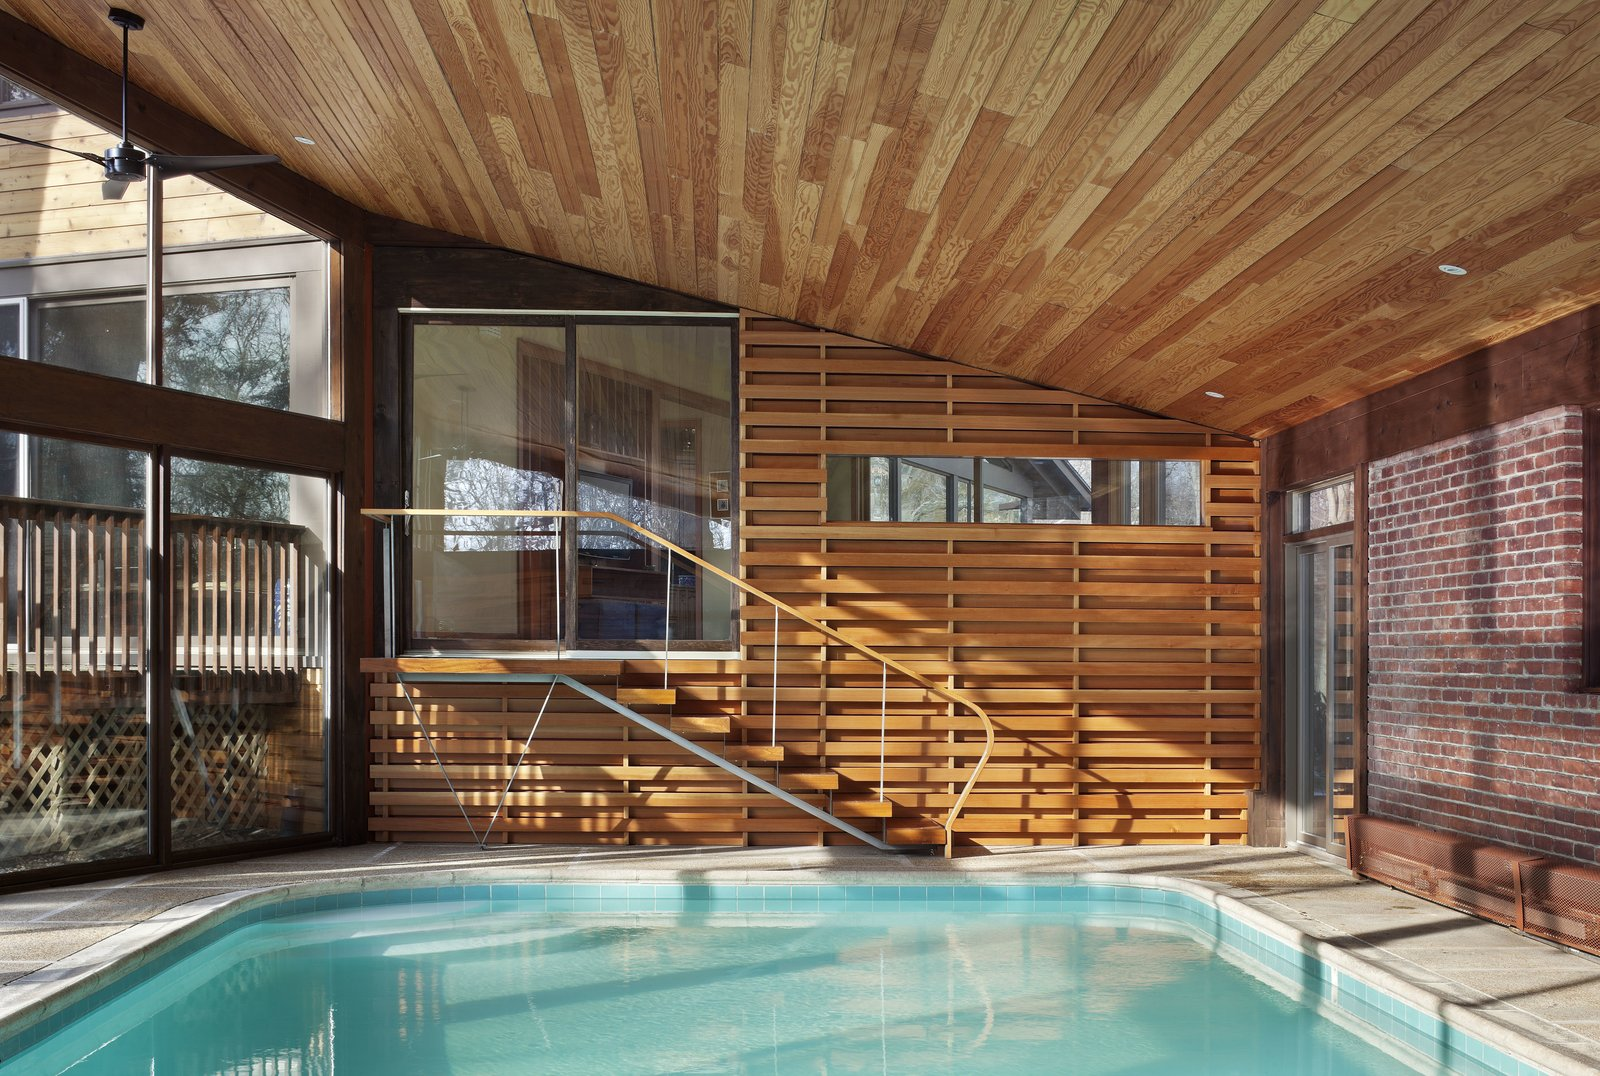 One of the biggest challenges of designing around an indoor pool was managing the humidity, especially with a sloping Douglas fir ceiling. Moser explains that by using a retractable pool cover it helps manage humidity levels. While in the winter there is low humidity, a little actually prevents the wood from drying out.  Photo 5 of 7 in After a Fire, a Midcentury Home Rises from the Ashes